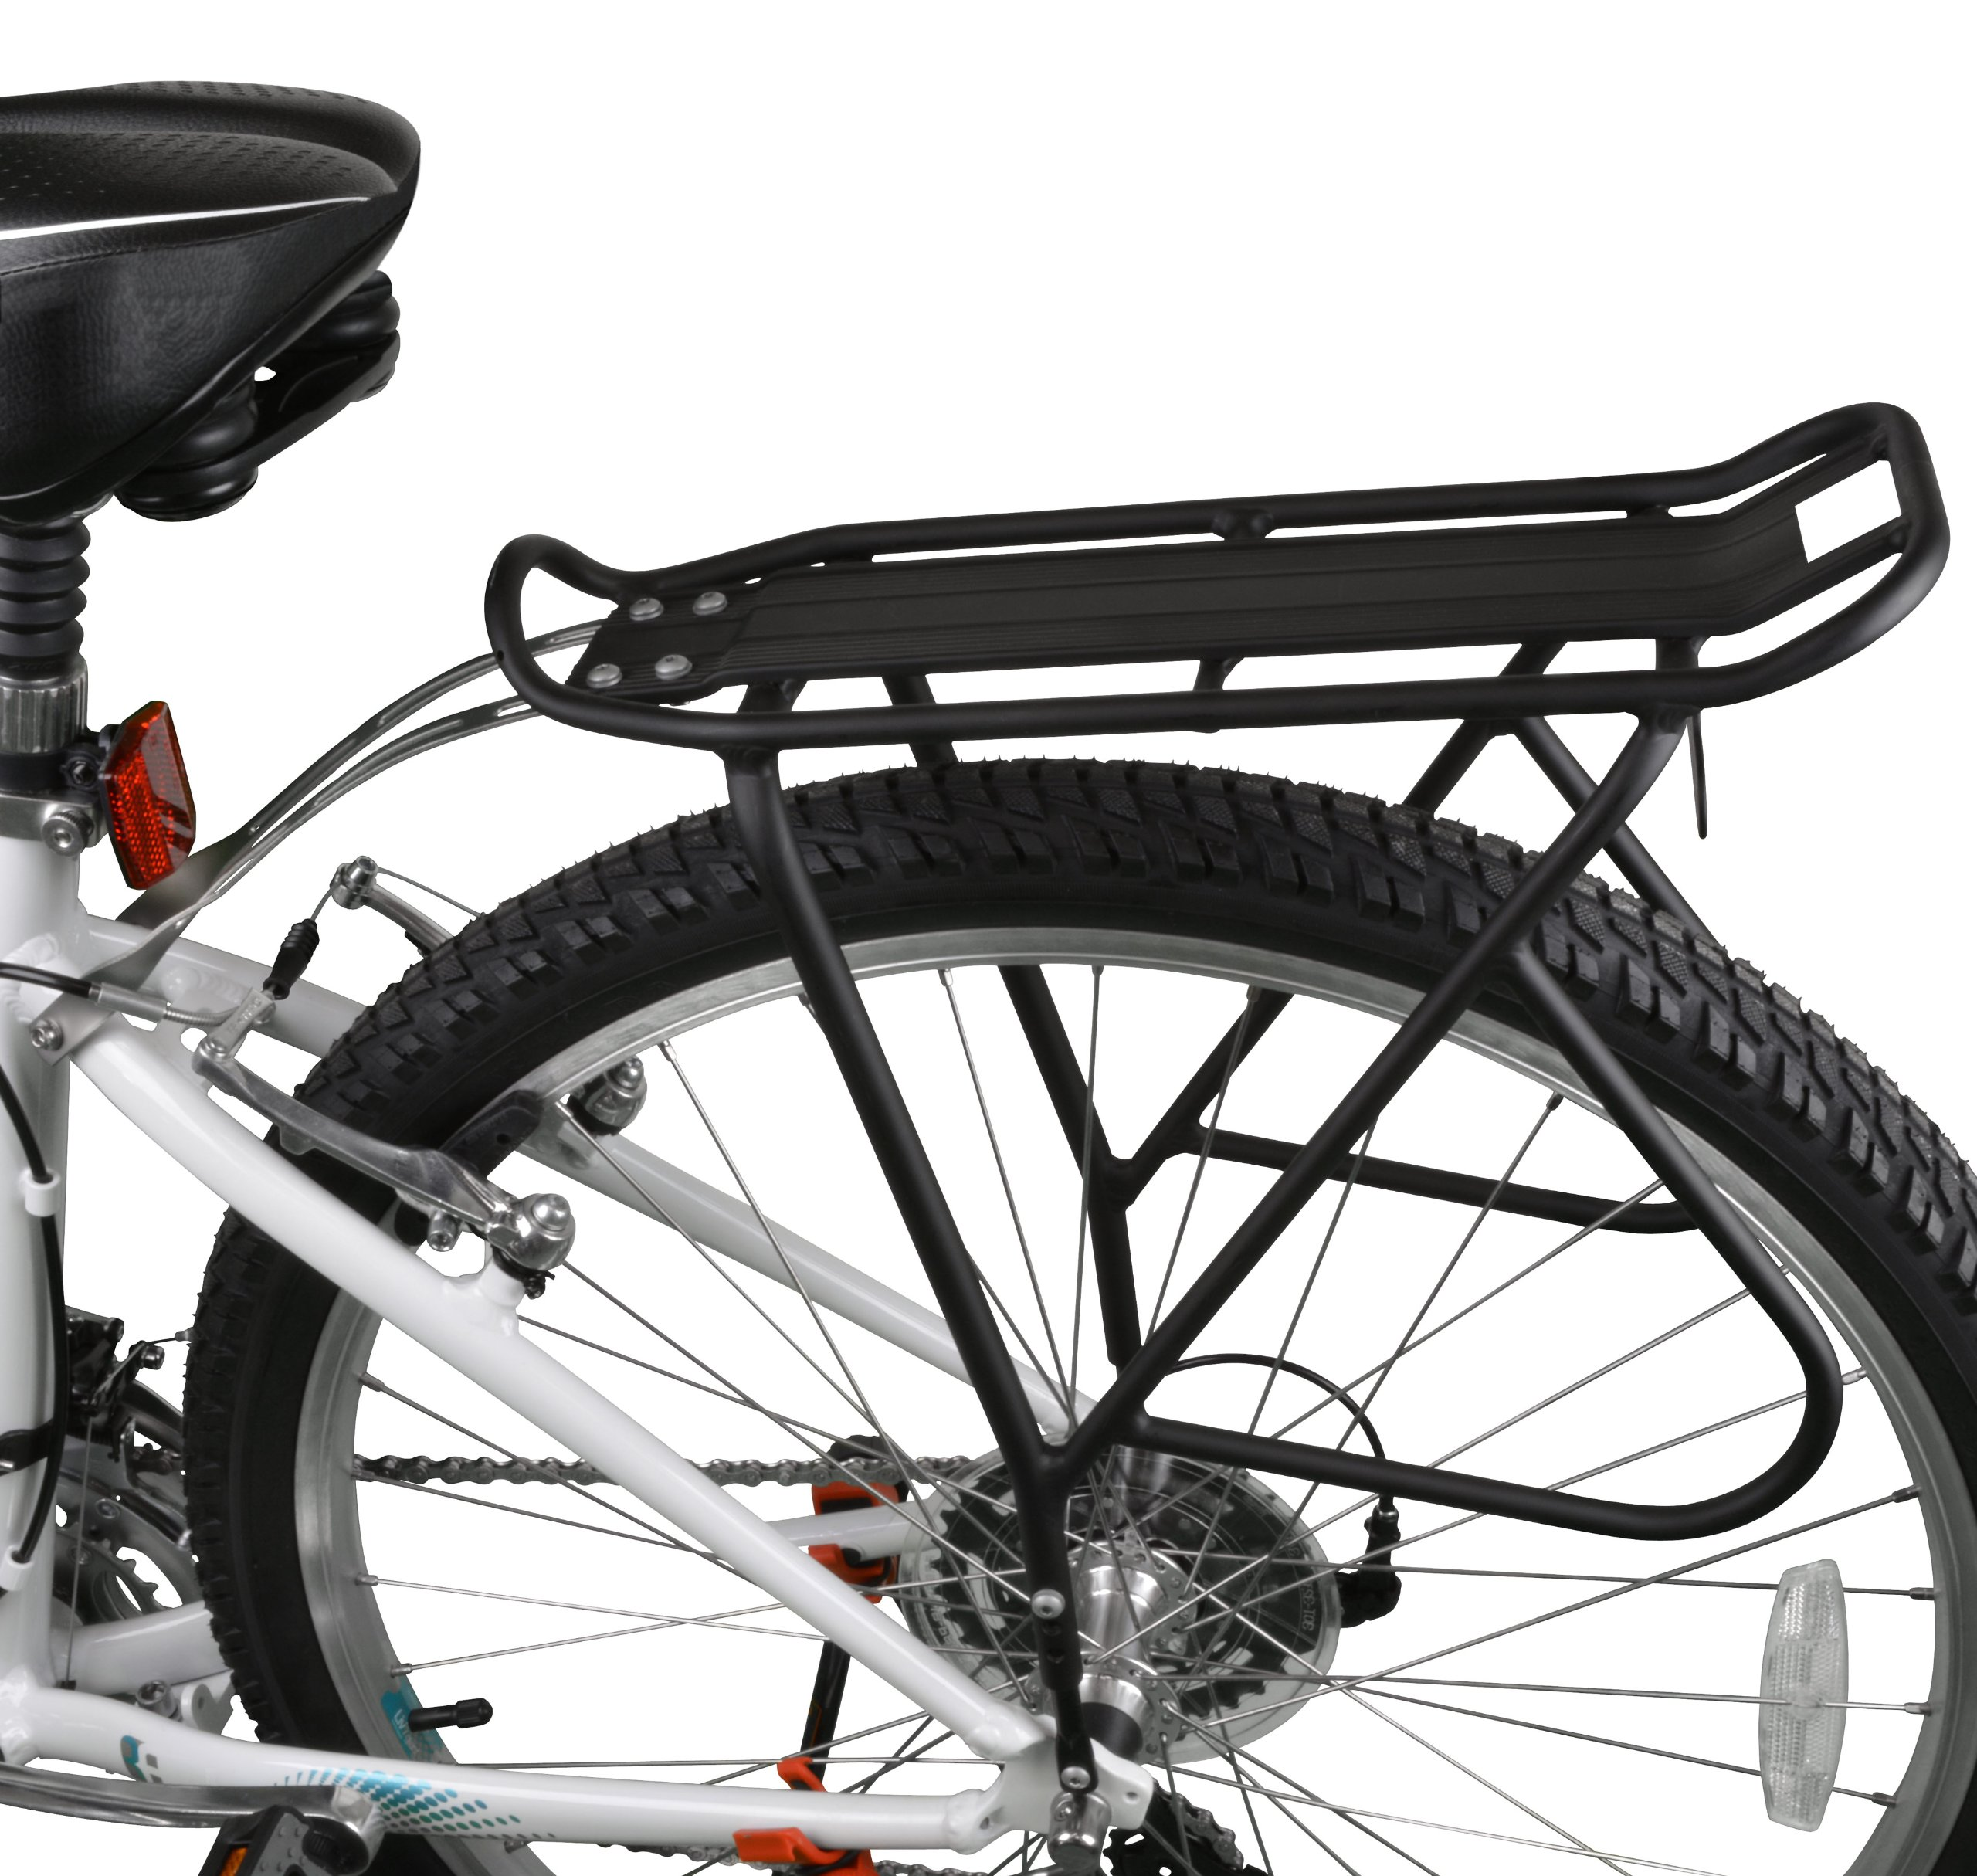 Ibera Bike Rack – Bicycle Touring Carrier with Fender Board, Frame-Mounted for Heavier Top & Side Loads, Height Adjustable for 26''-29'' Frames